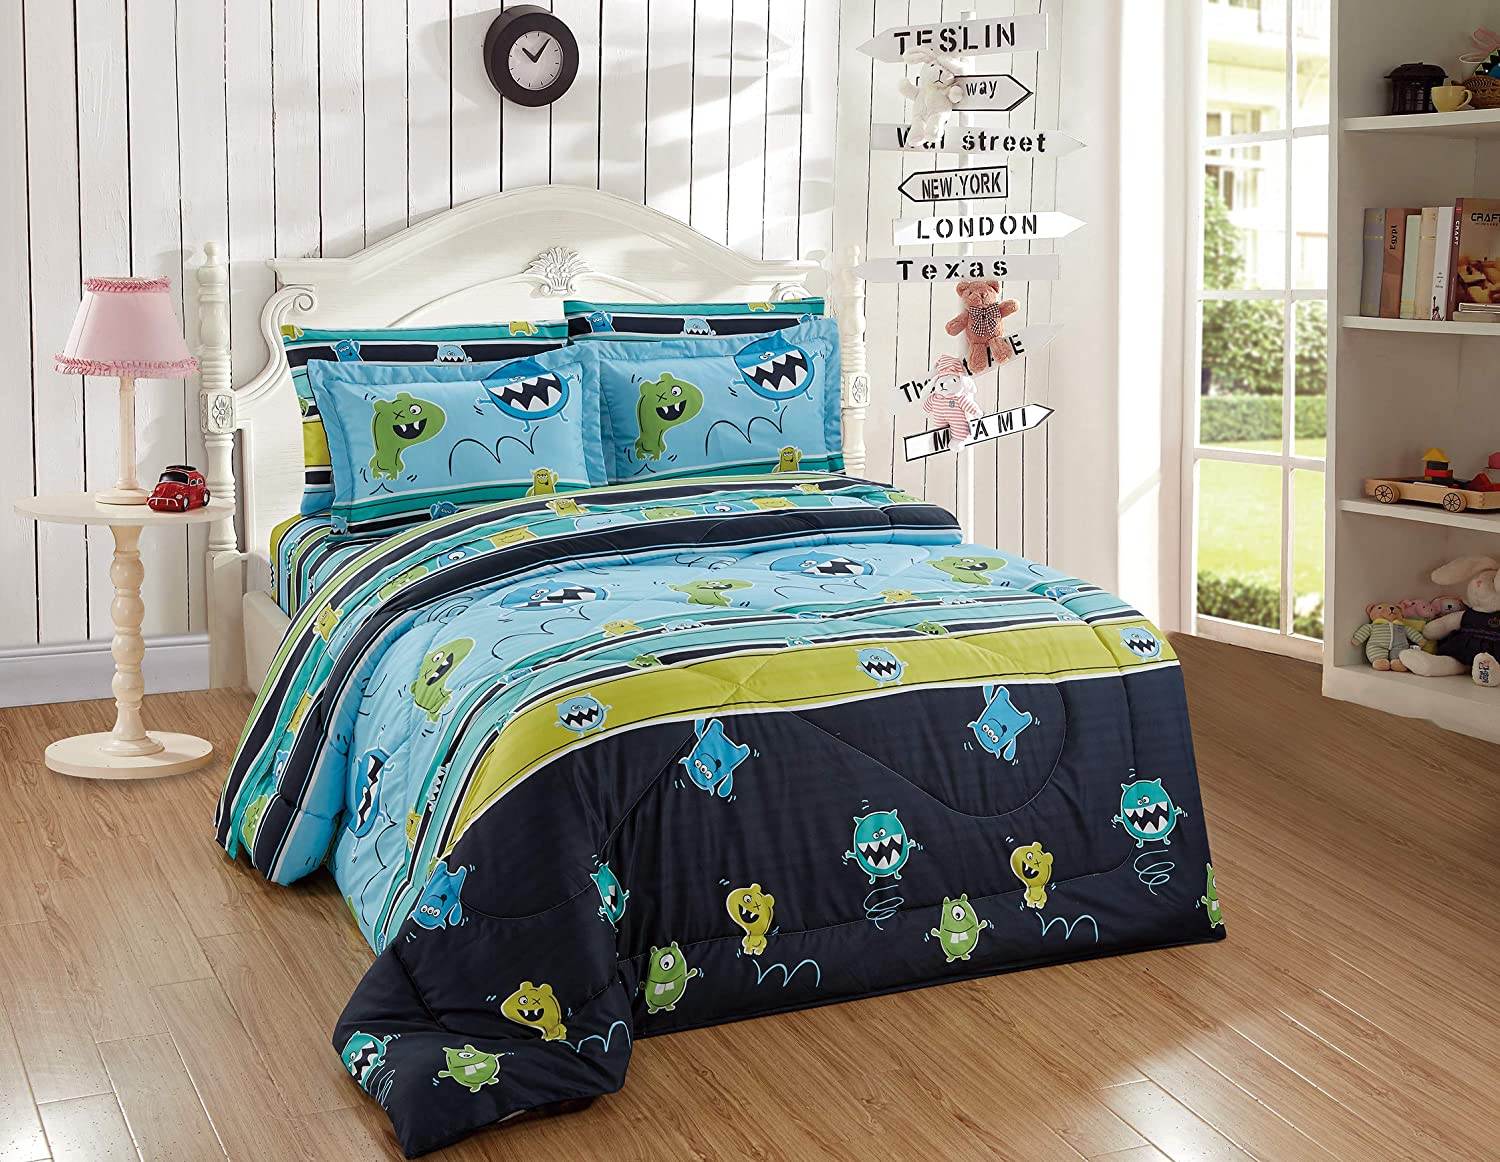 Better Home Style Green Blue Jumping Monsters Striped Fun Design 7 Piece Comforter Bedding Set for Boys/Kids/Teens Bed in a Bag with Sheet Set # Monster (Full)